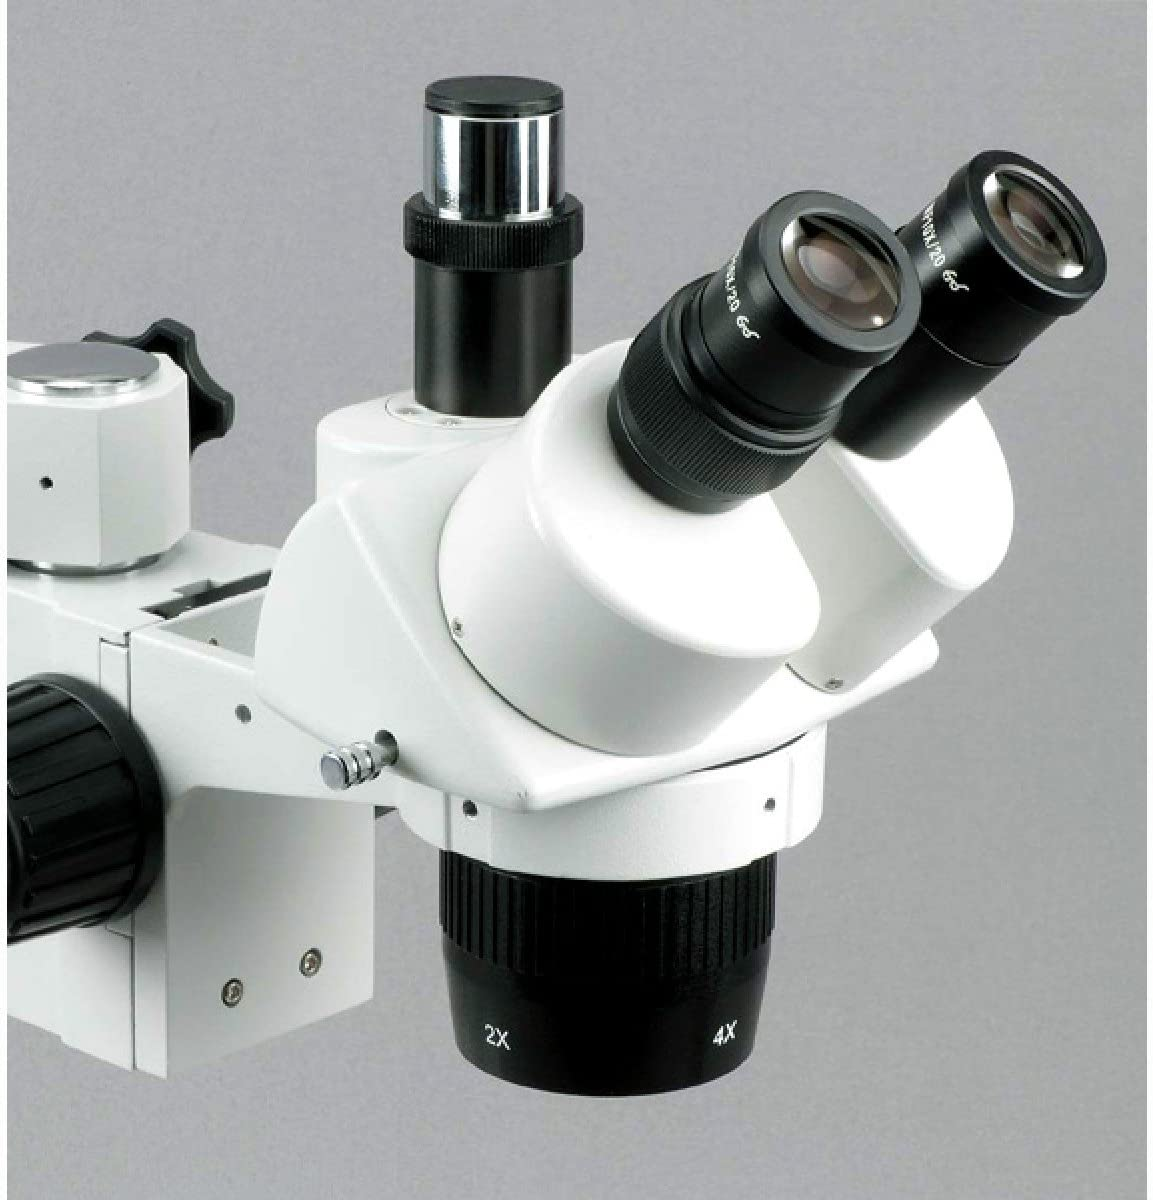 Single-Arm Boom Stand 10X//20X//40X Magnification AmScope SW-3T24X Trinocular Stereo Microscope Includes 0.5x Barlow Lens WH10x Eyepieces 2X//4X Objective